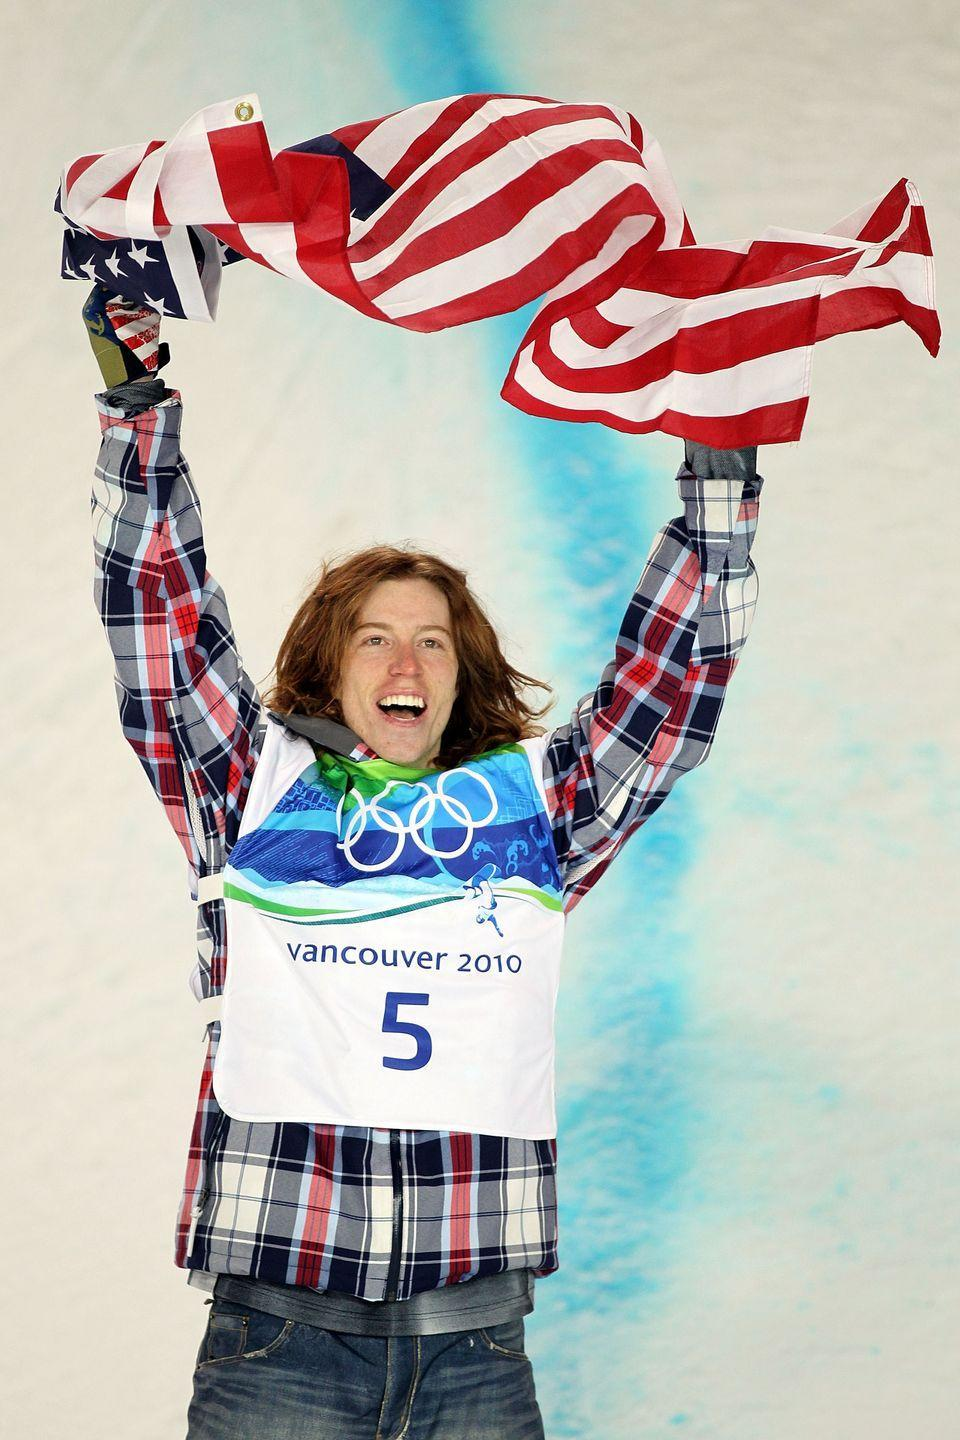 """<p>Shaun White—or as people like to call him, the """"Flying Tomato""""—shredded his way to a gold medal victory by landing the first ever Double McTwist 1260 on the halfpipe in 2010.</p>"""